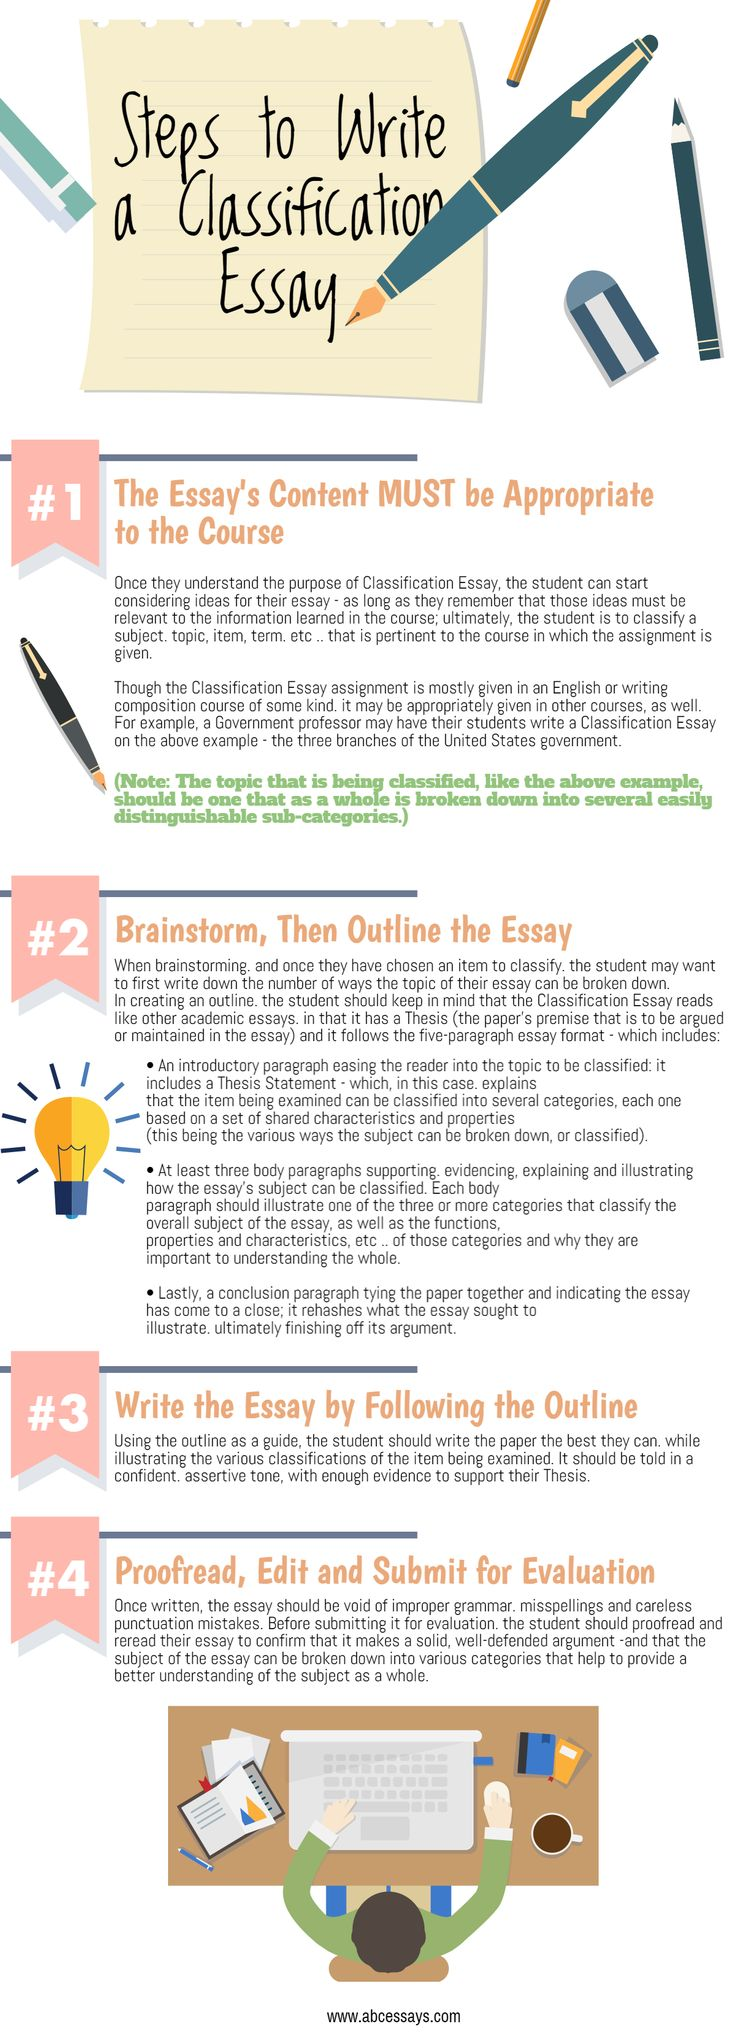 best writing tips images essay writing daily  evaluate the positive and negative effects of the industrial revolution dbq essay jan 2011 · get access to industrial revolution dbq essays only